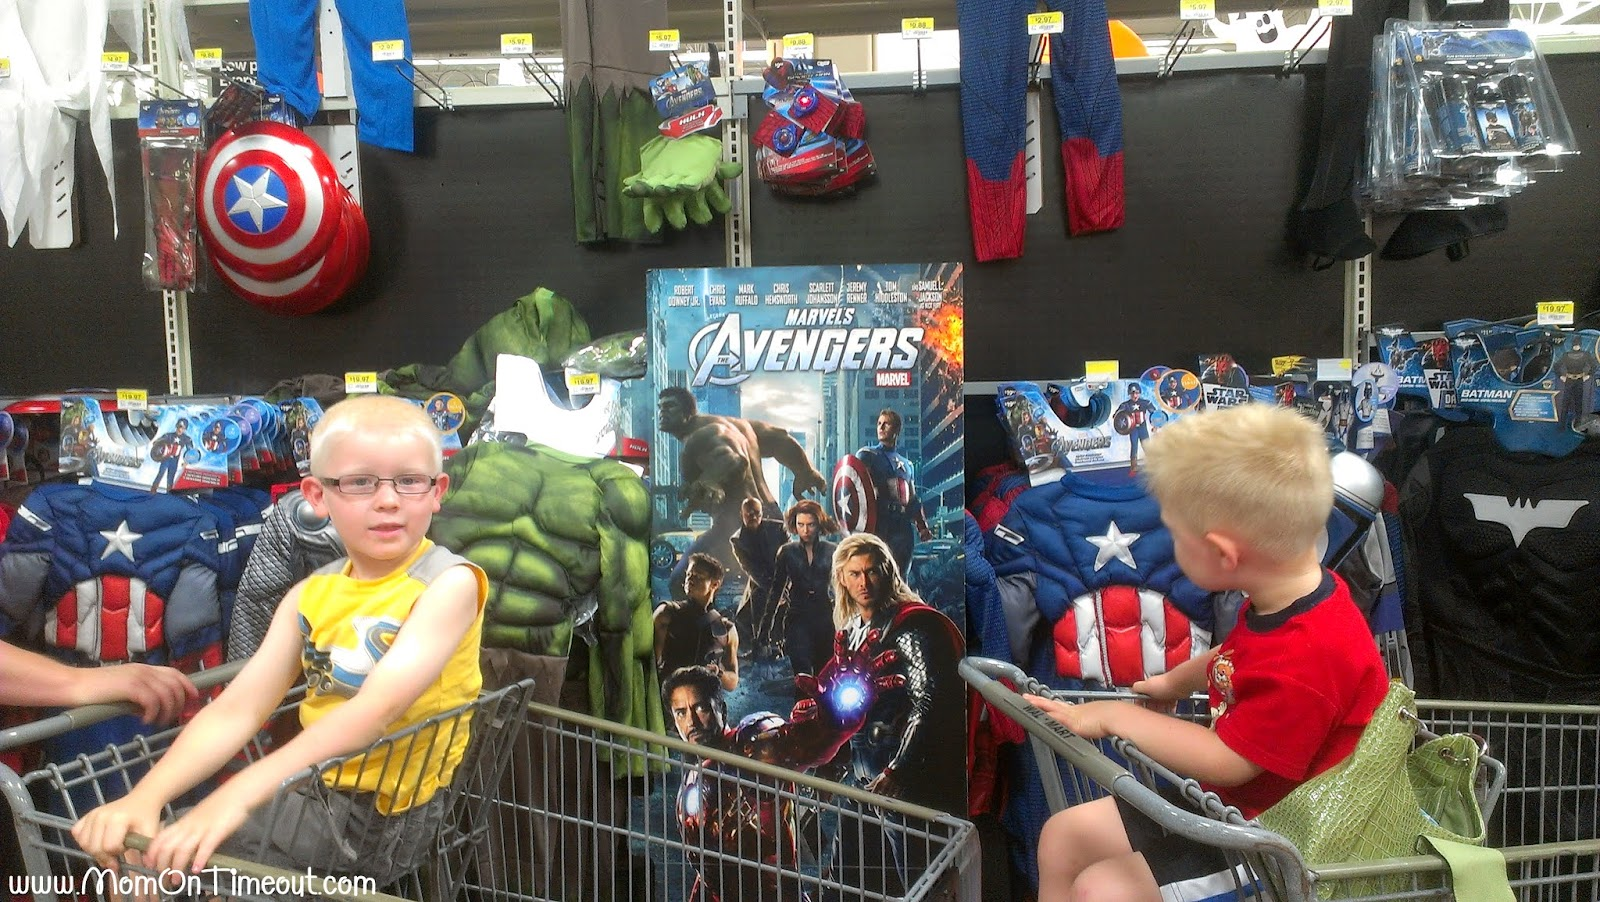 Calling All Avengers! An Avengers Party!